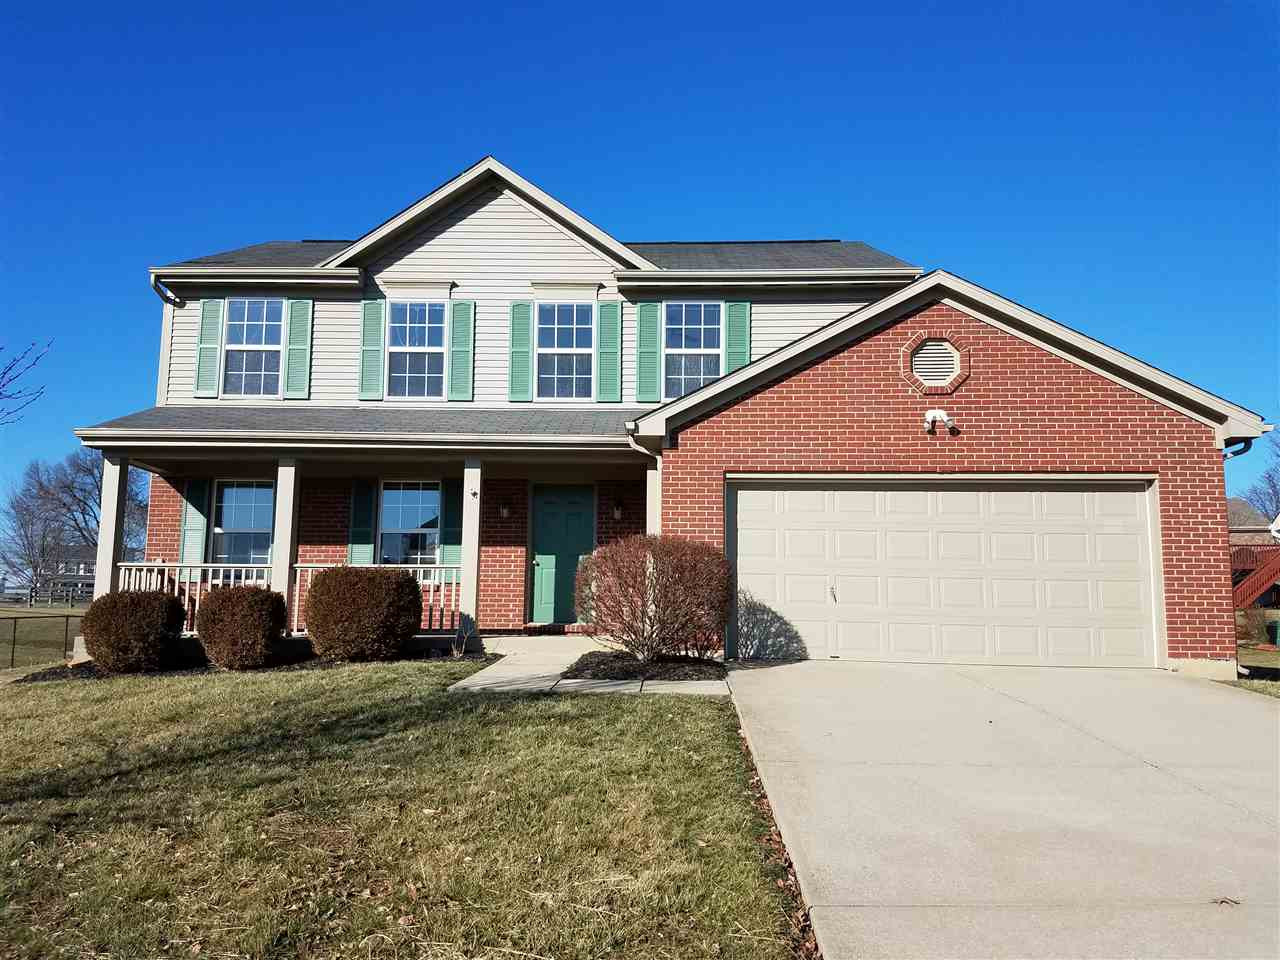 Photo 1 for 2413 Millstream Ln Burlington, KY 41005